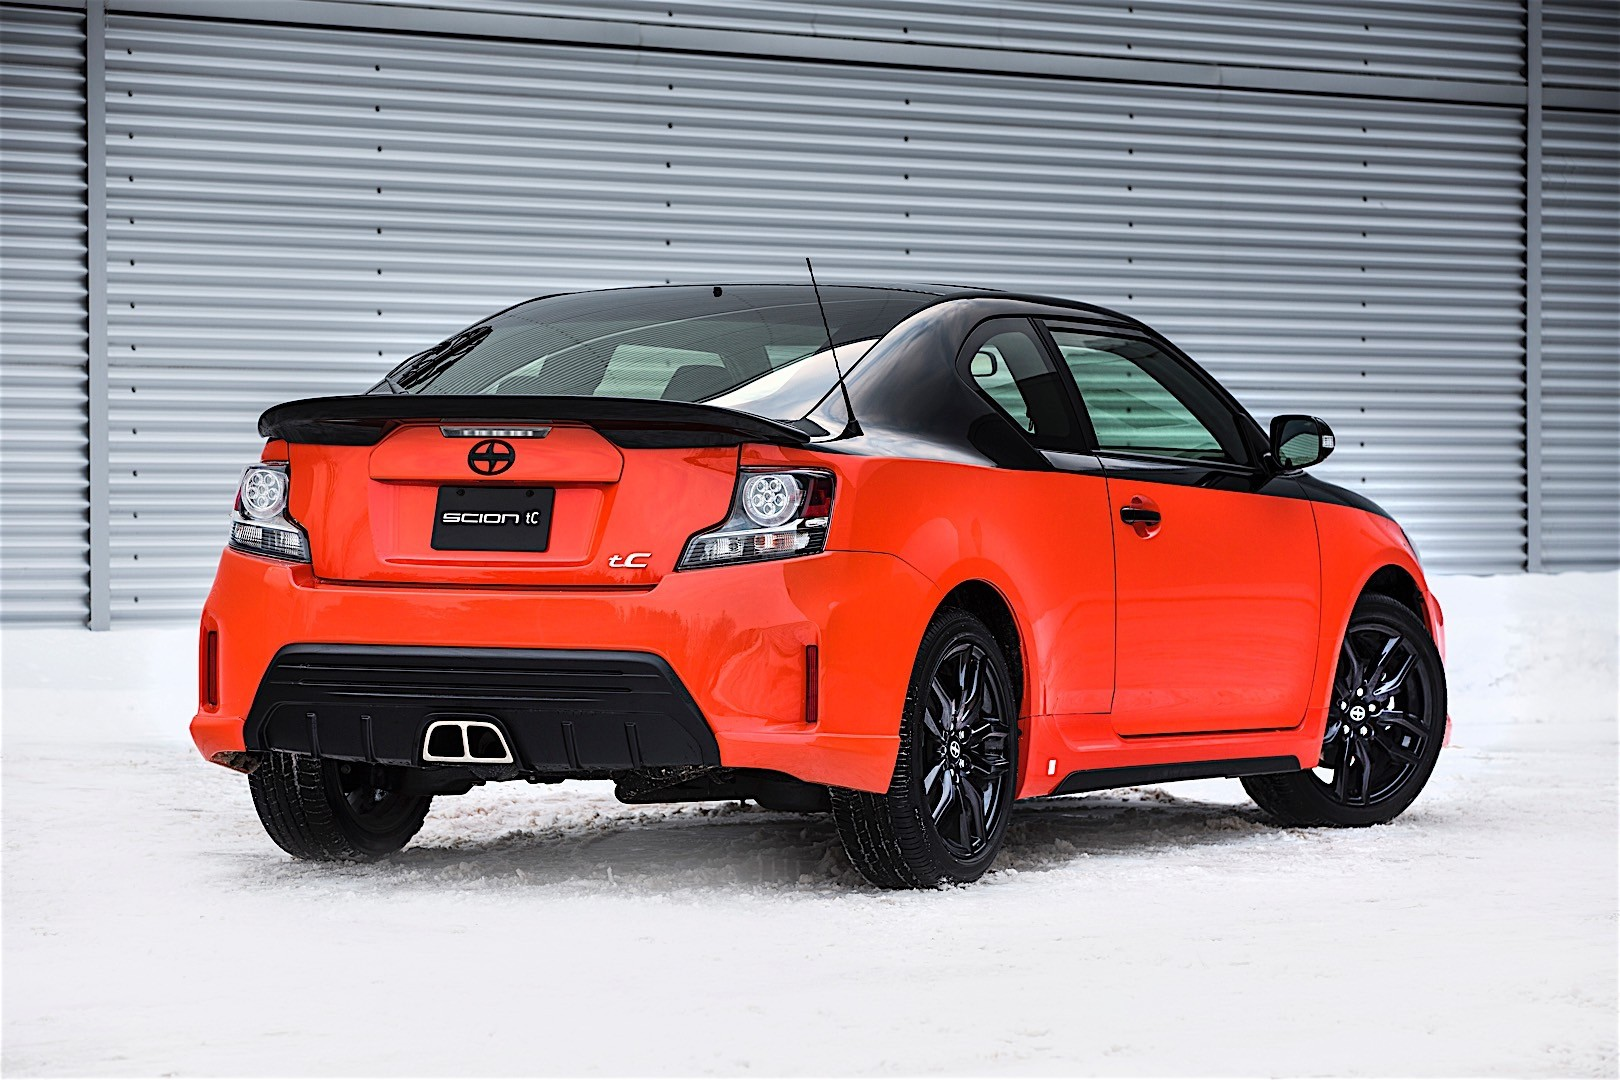 Scion Tc Specs Photos 2013 2014 2015 2016 Autoevolution